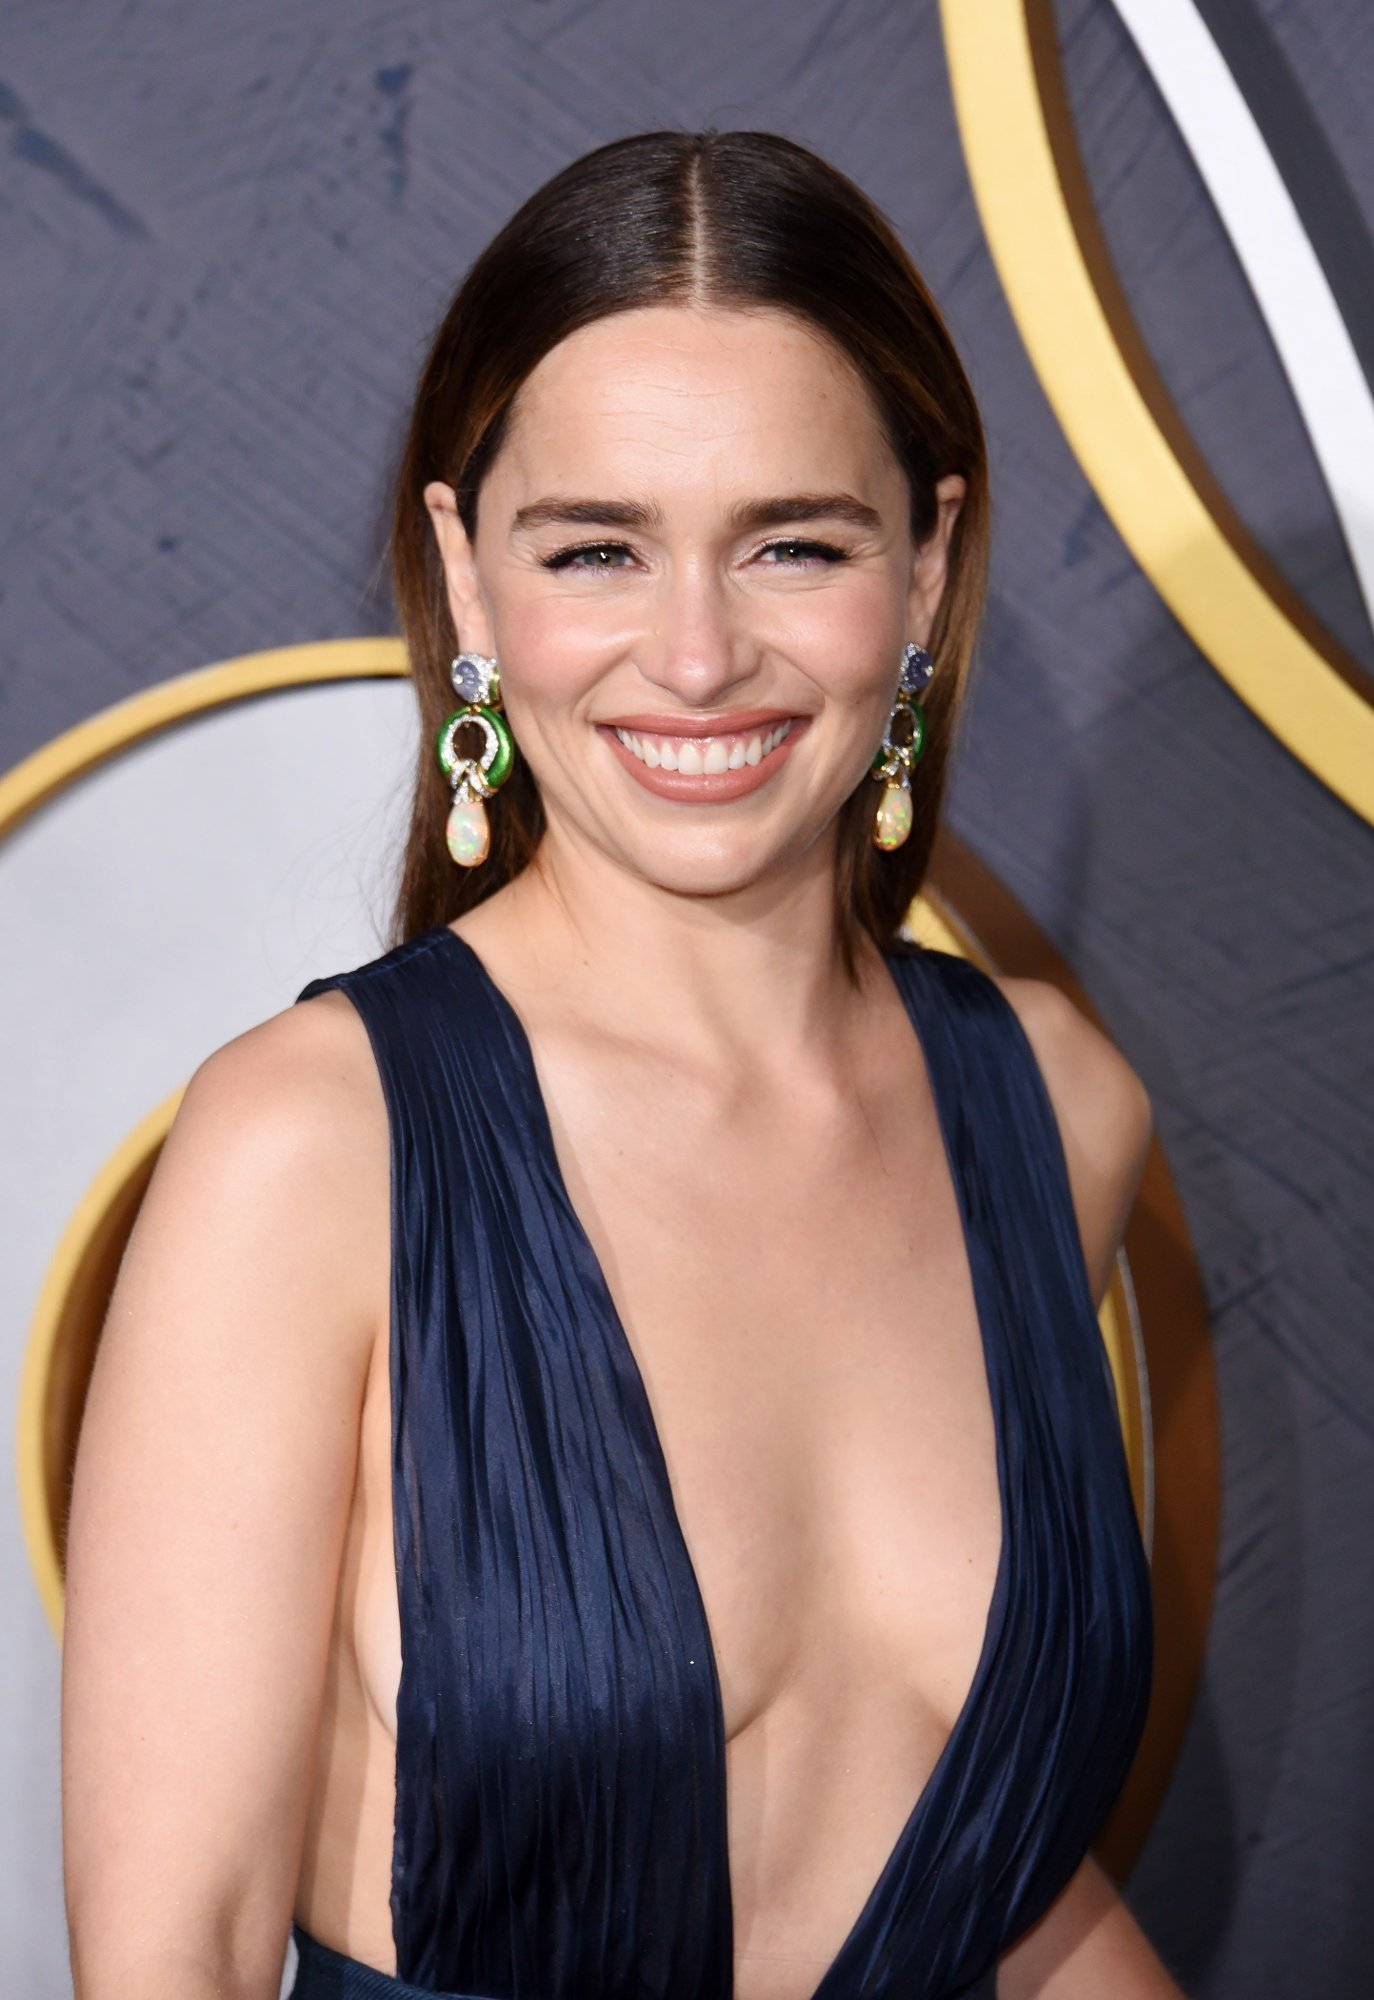 71st Primetime Emmy Awards - HBO Party - Los Angeles 71st Primetime Emmy Awards - HBO Party - Los Angeles. Emilia Clarke attending the 2019 HBO Emmy Party held at the Pacific Design Center in Los Angeles, California URN:45529406